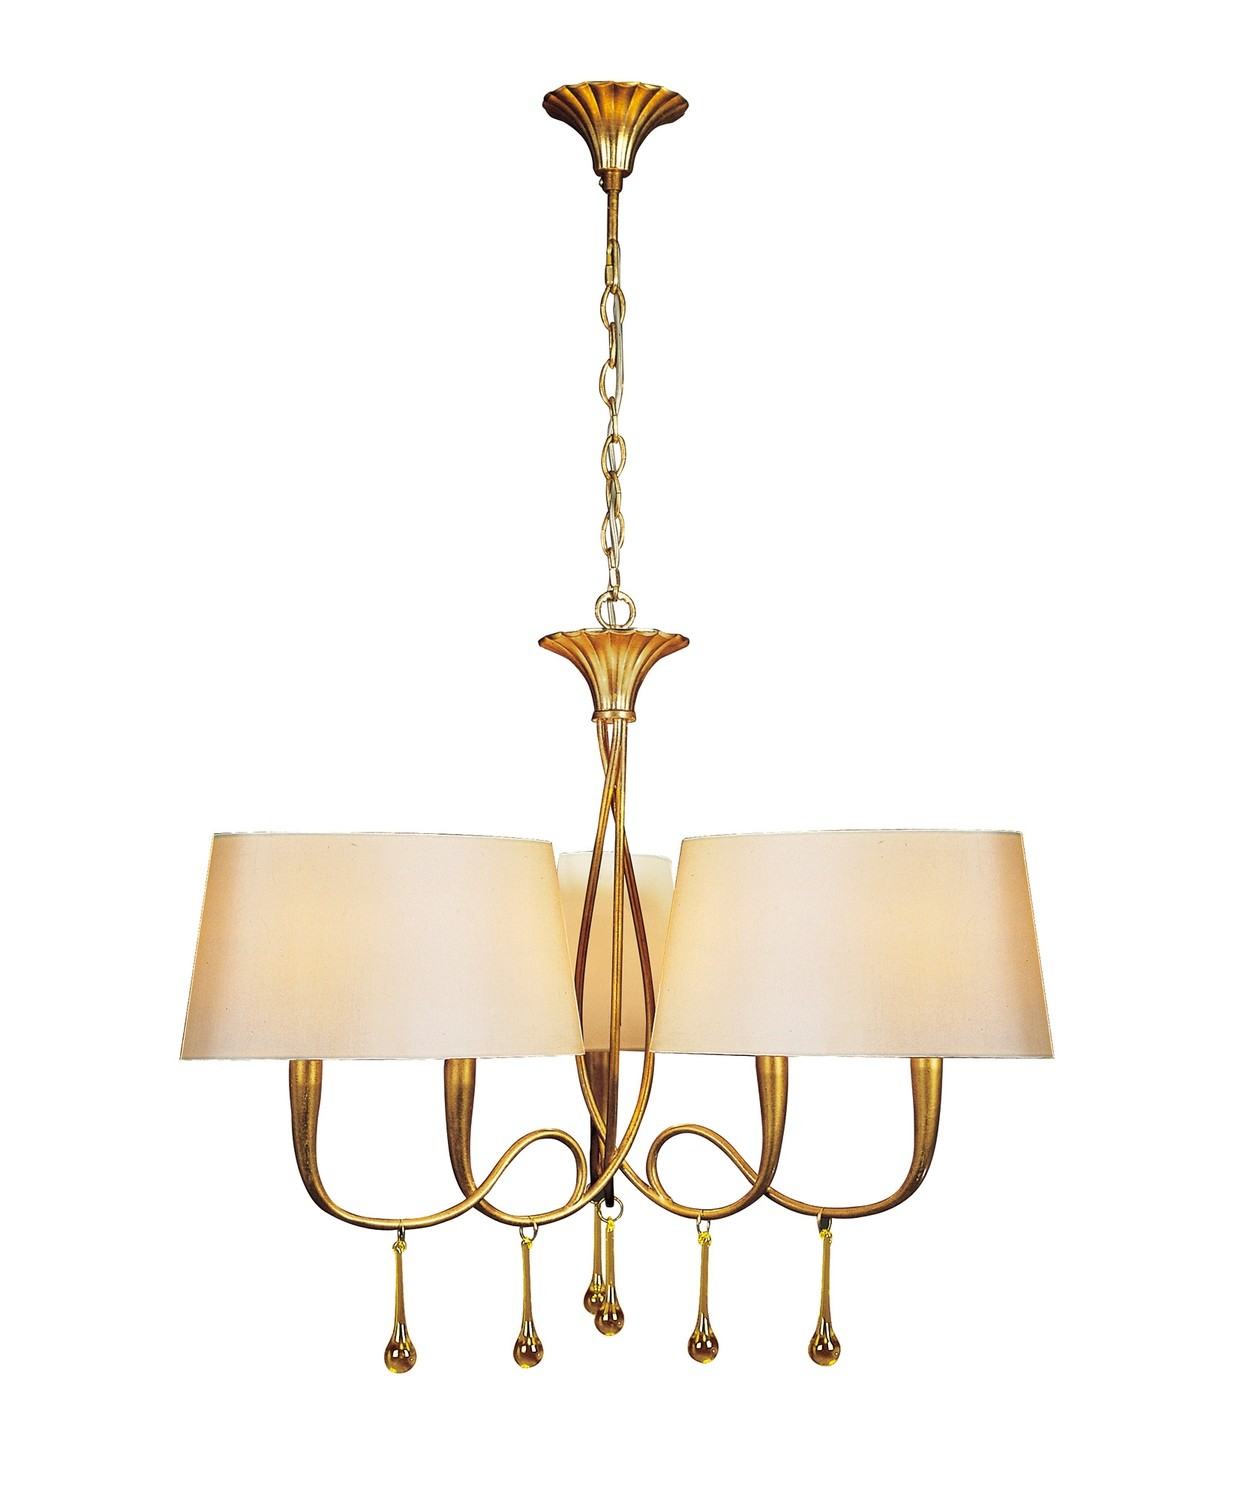 Paola Pendant 3 Arm 6 Light E14, Gold Painted With Cream Shades & Amber Glass Droplets